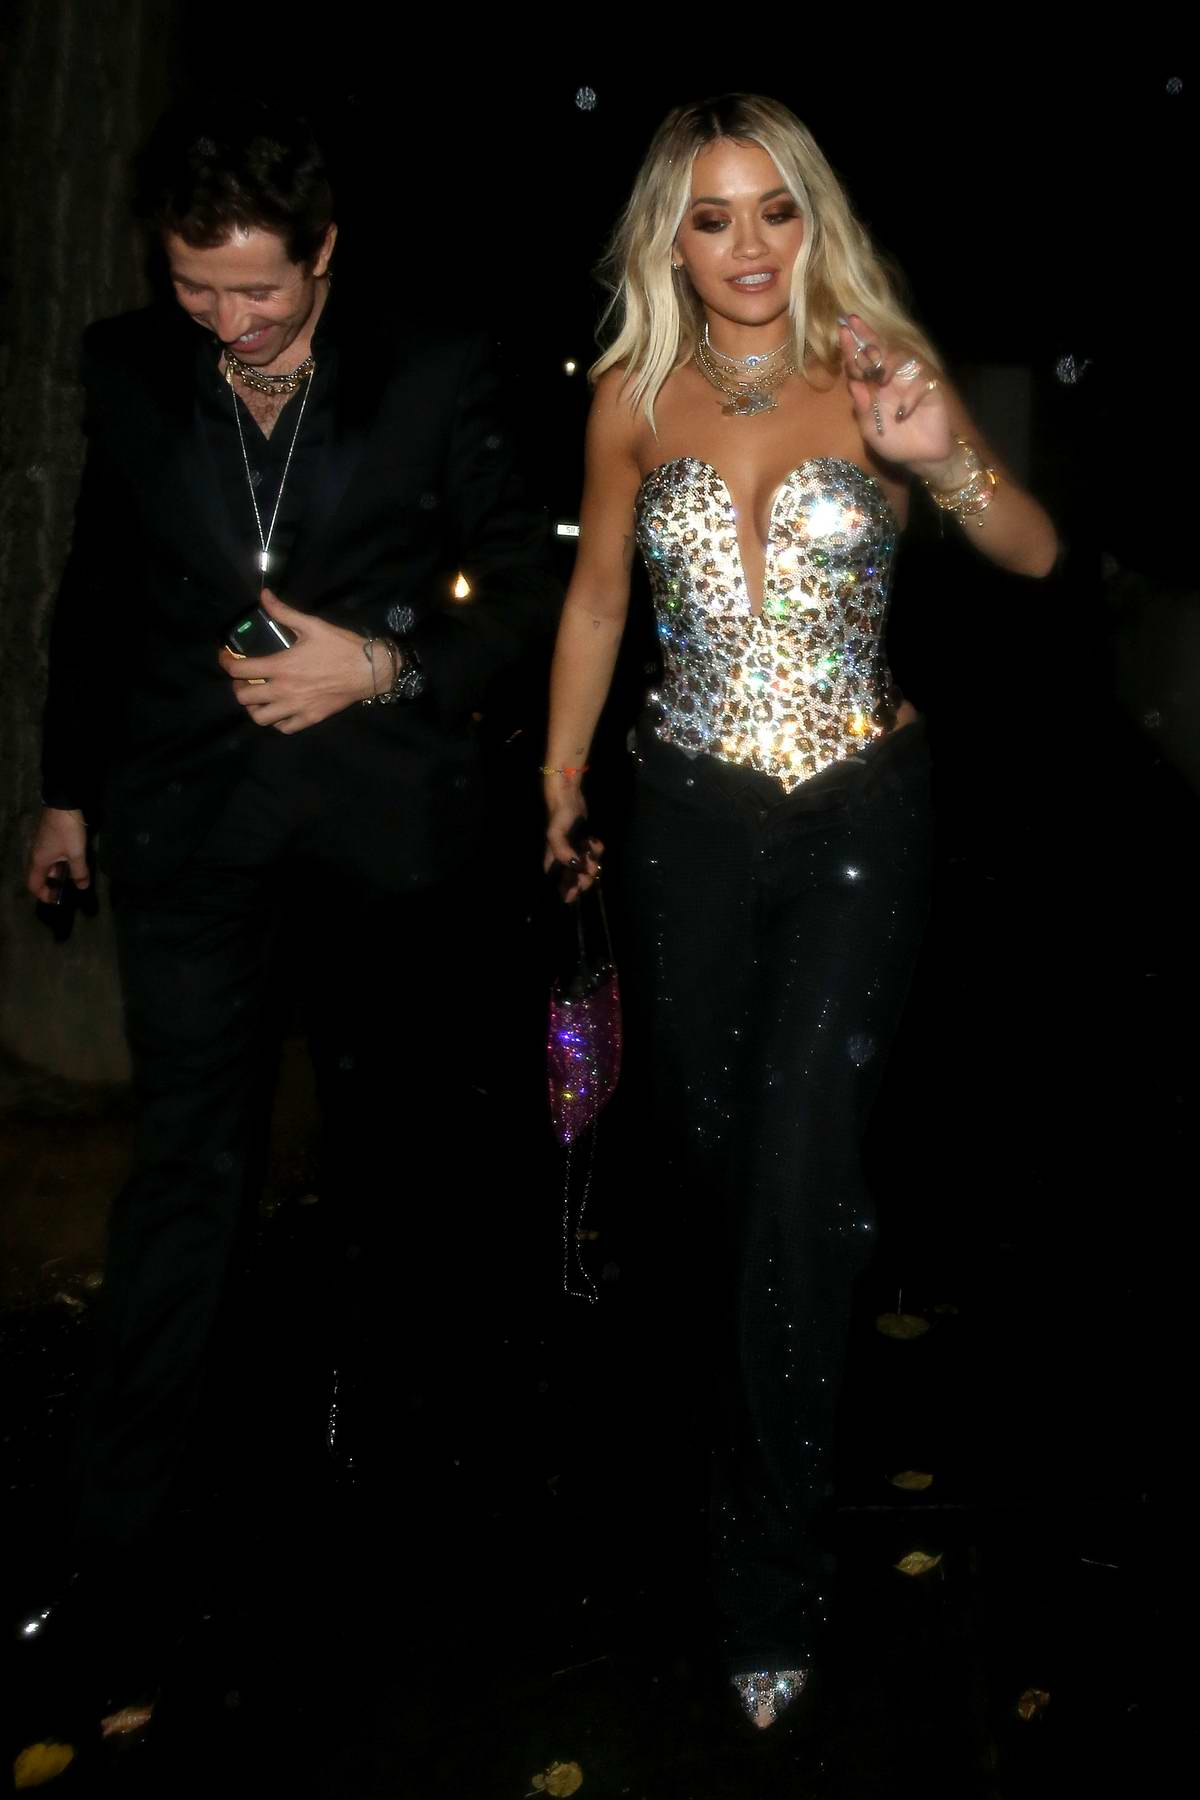 Rita Ora seen leaving the 2019 GQ Men Of The Year Awards after party at Freud's in London, UK